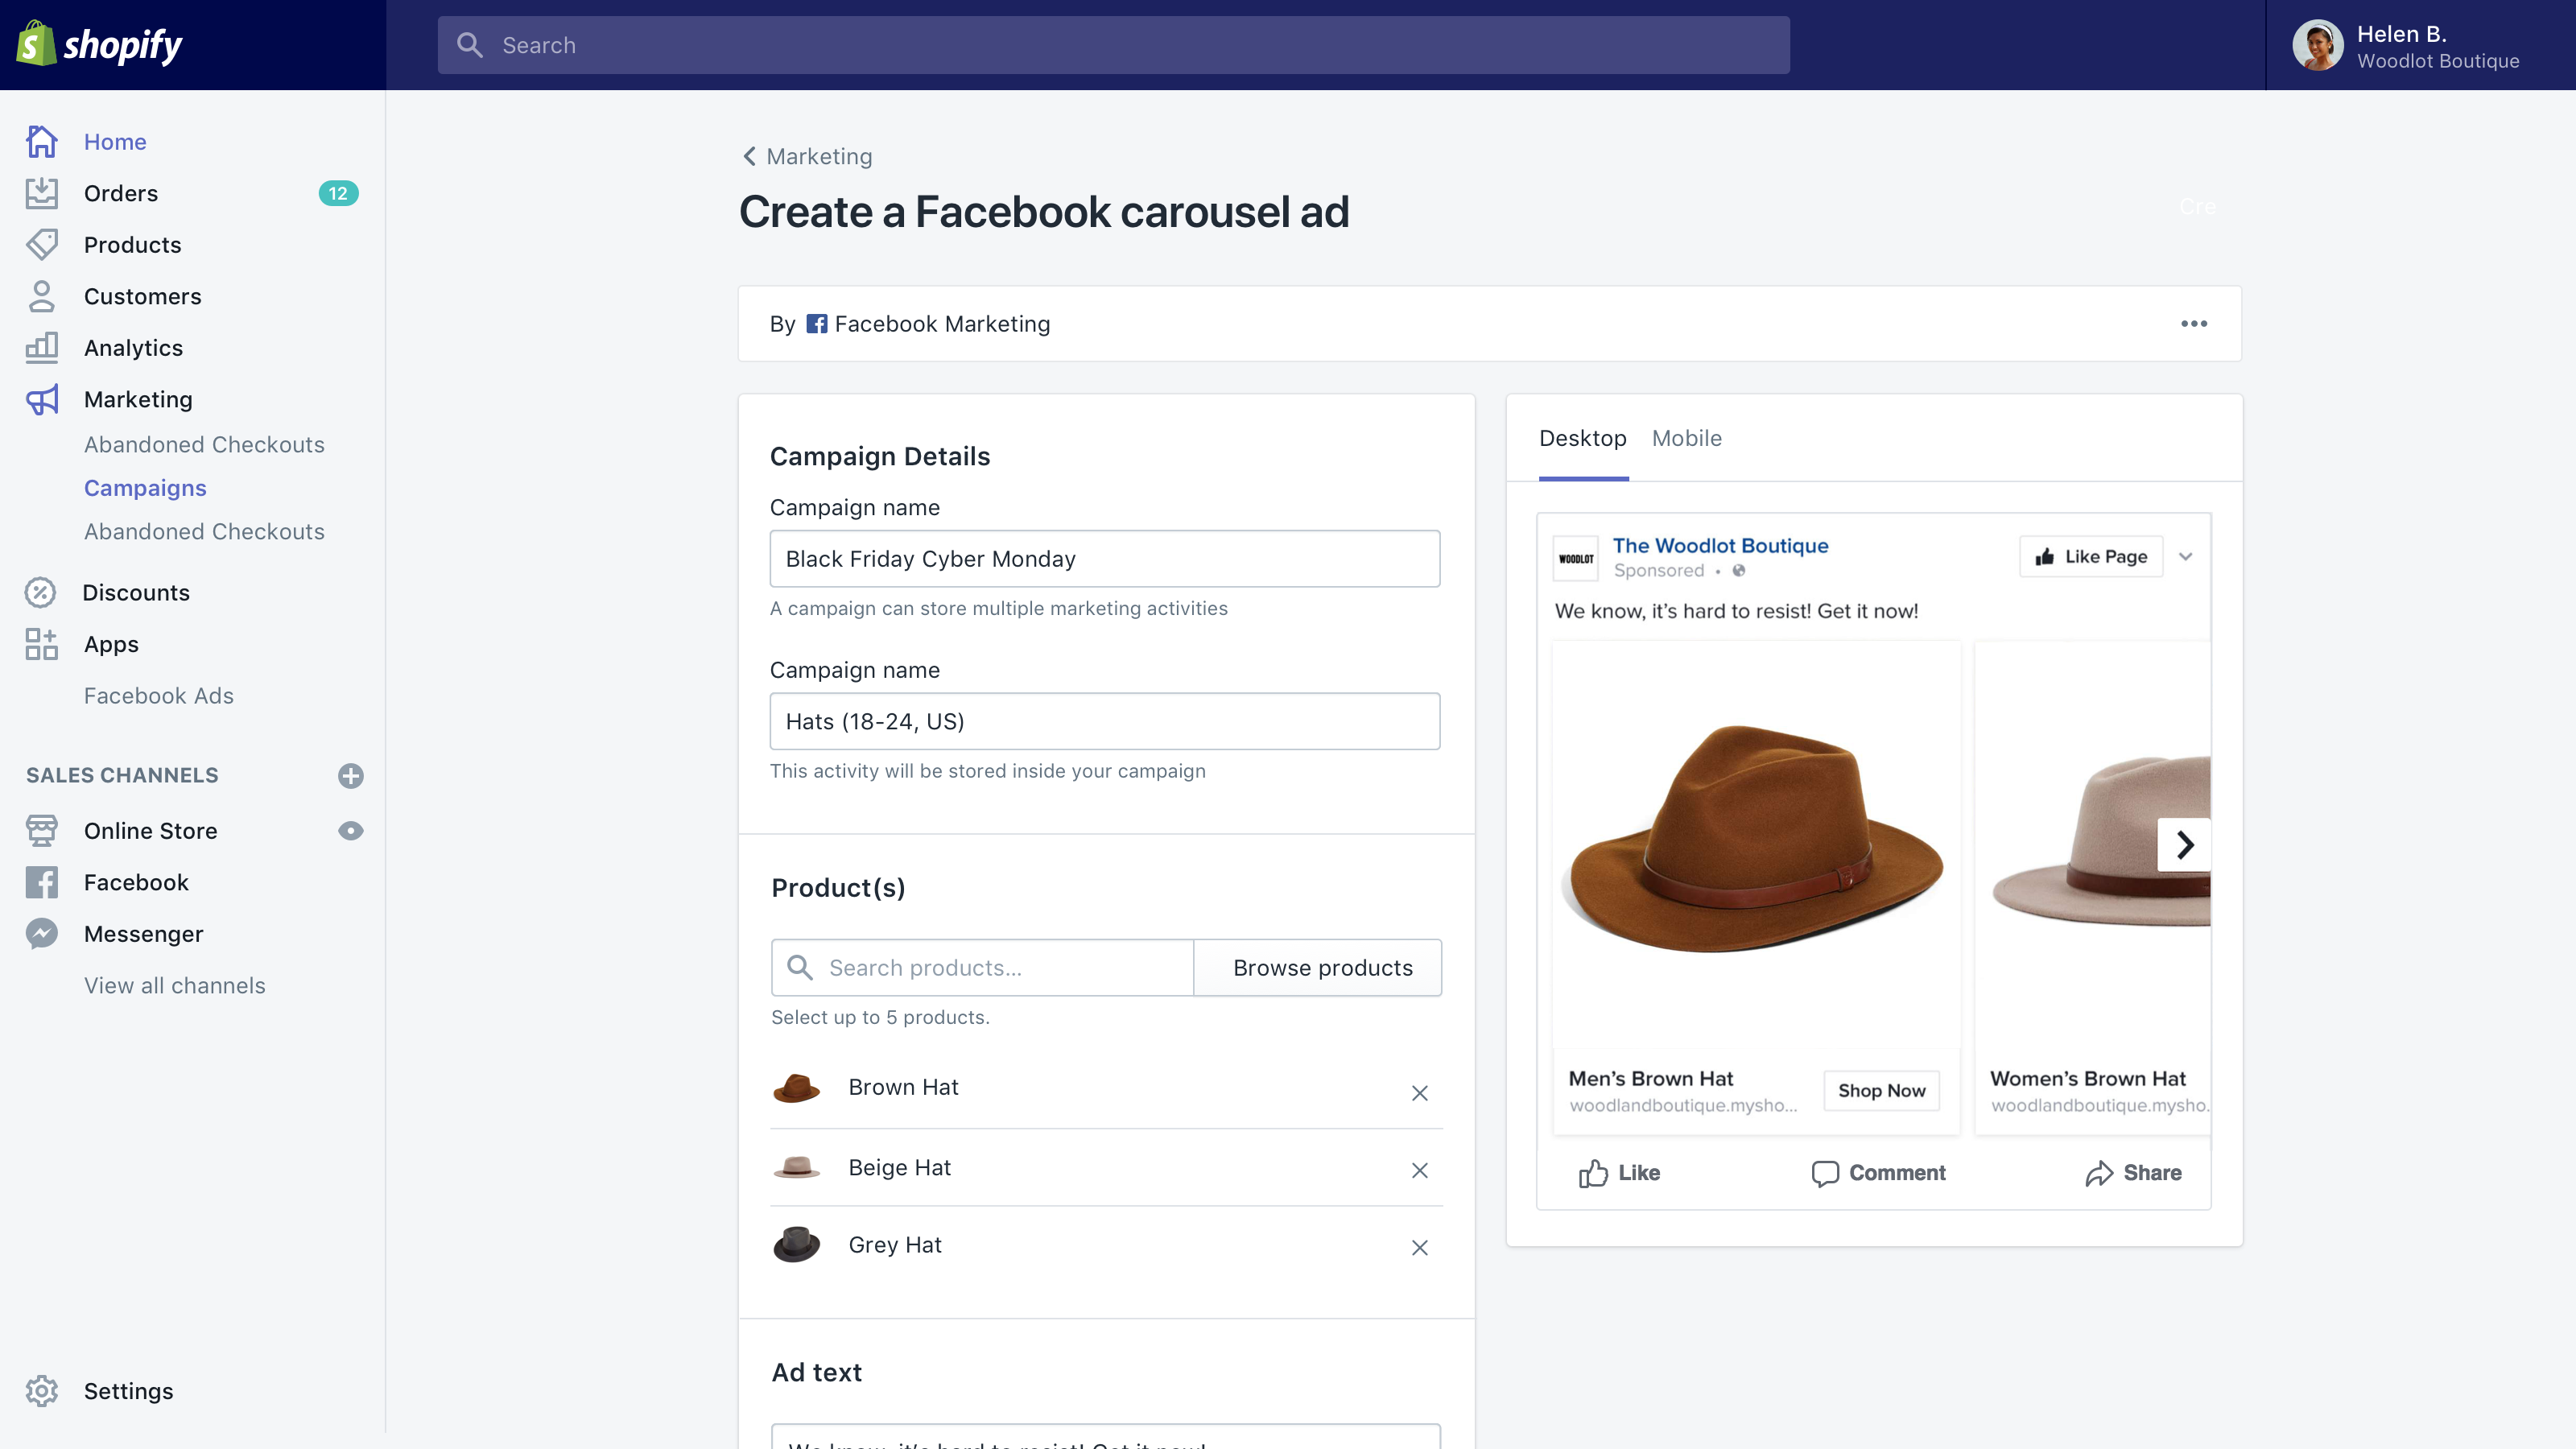 Set up Facebook carousel ads directly in Shopify